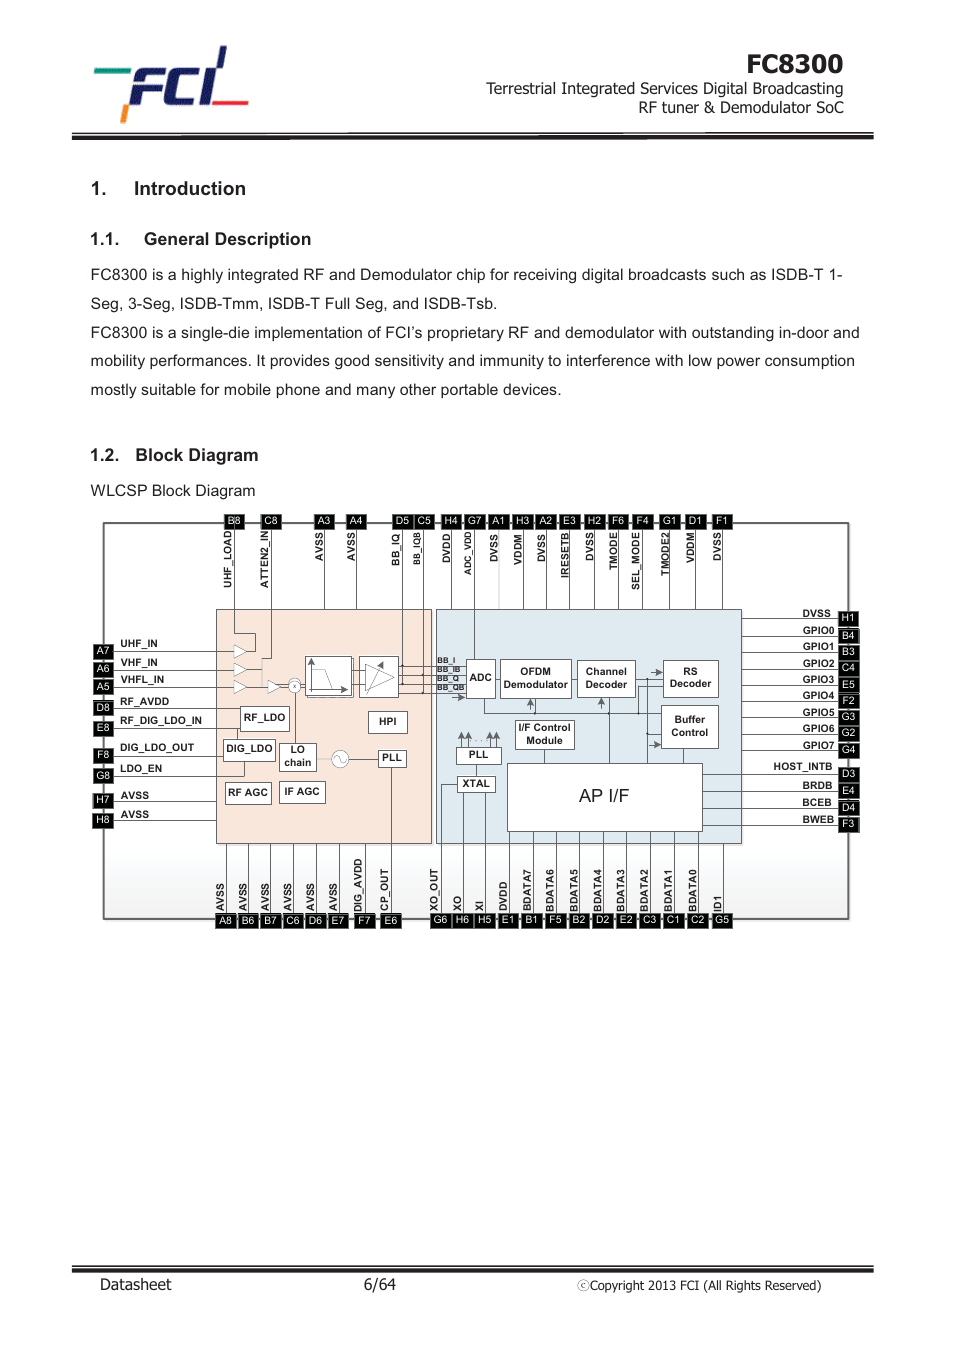 hight resolution of fc8300 introduction ap i f silicon motion fc8300 user manual page 6 8